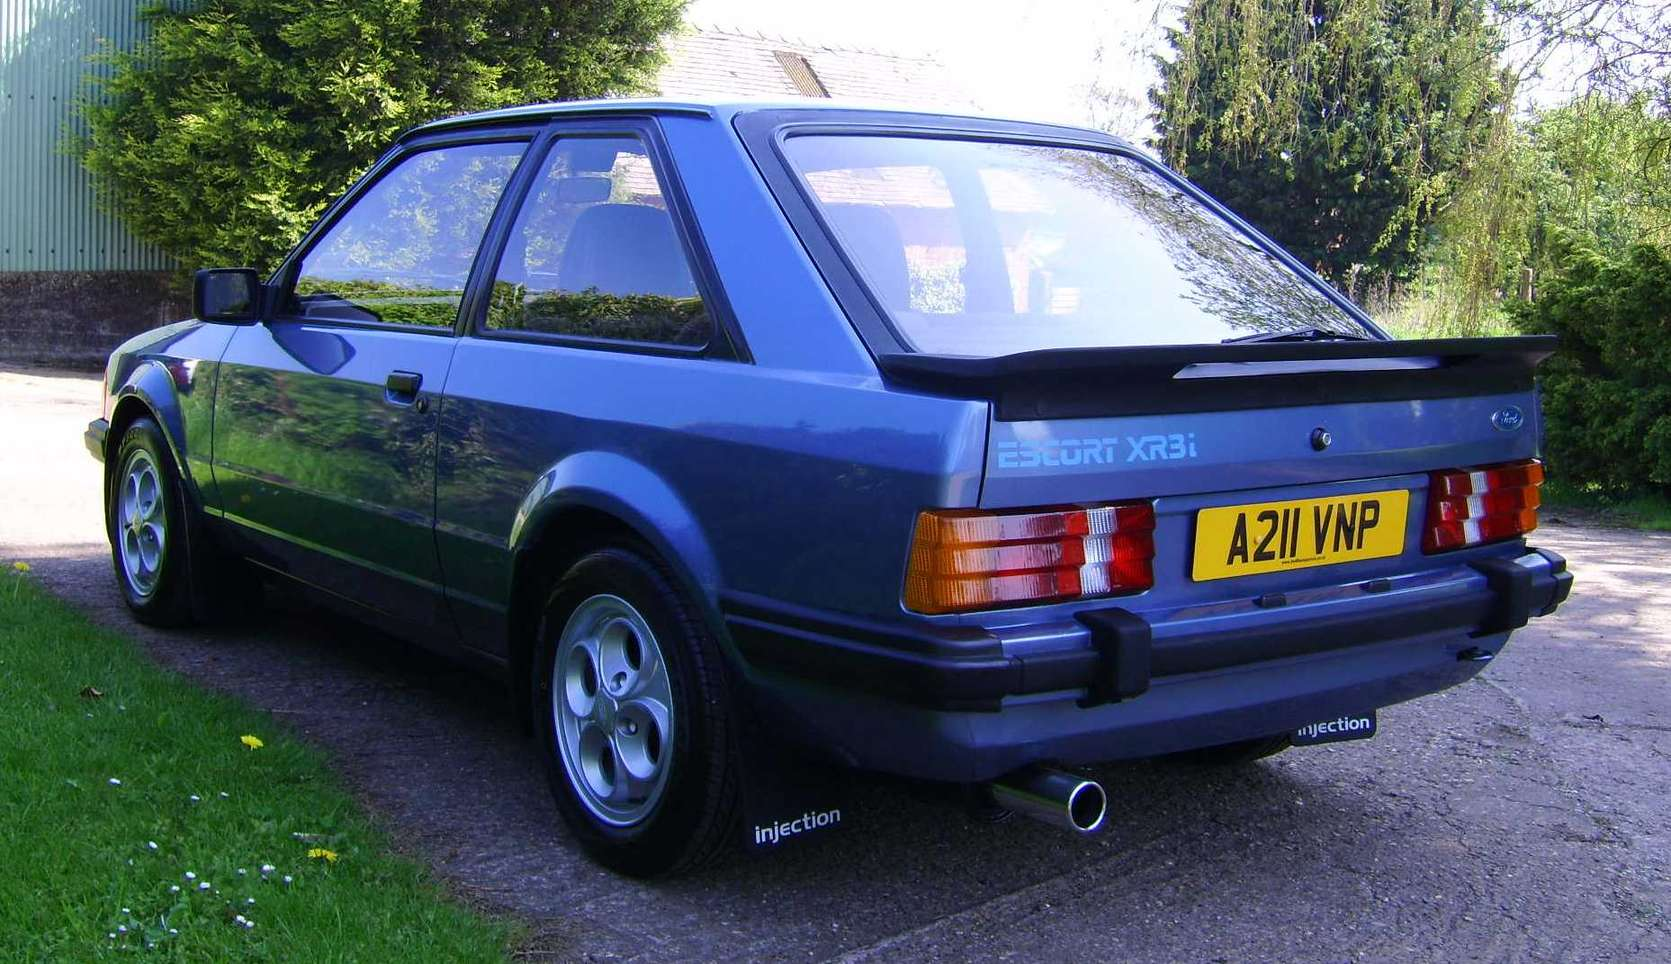 Ford Escort Xr3i #7927647